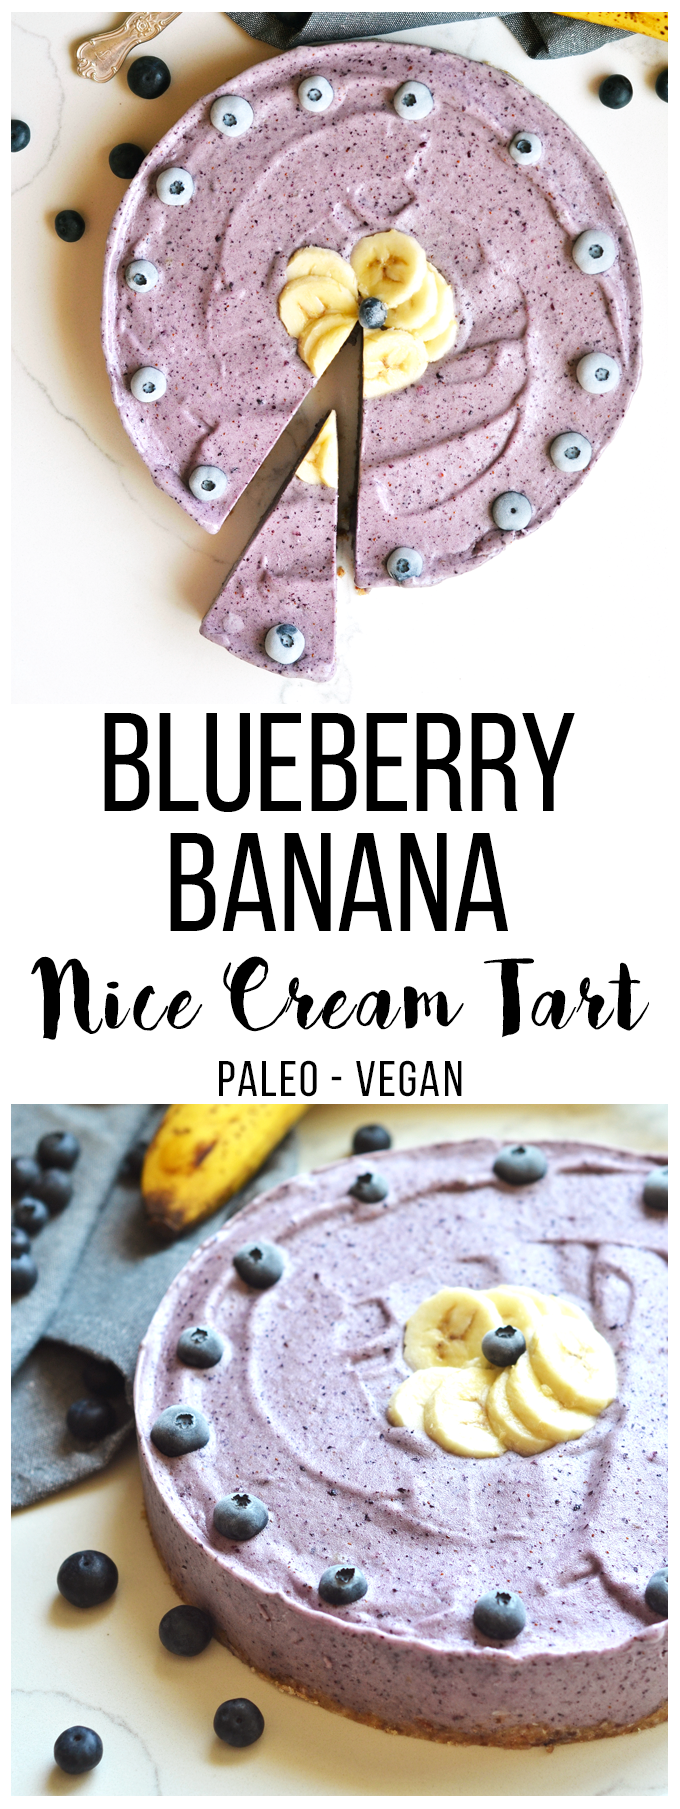 This Blueberry Banana Nice Cream Tart is perfect Paleo and Vegan dessert for hot summer days! Simple to make and a healthy frozen treat!This Blueberry Banana Nice Cream Tart is perfect Paleo and Vegan dessert for hot summer days! A great dairy free ice cream alternative!